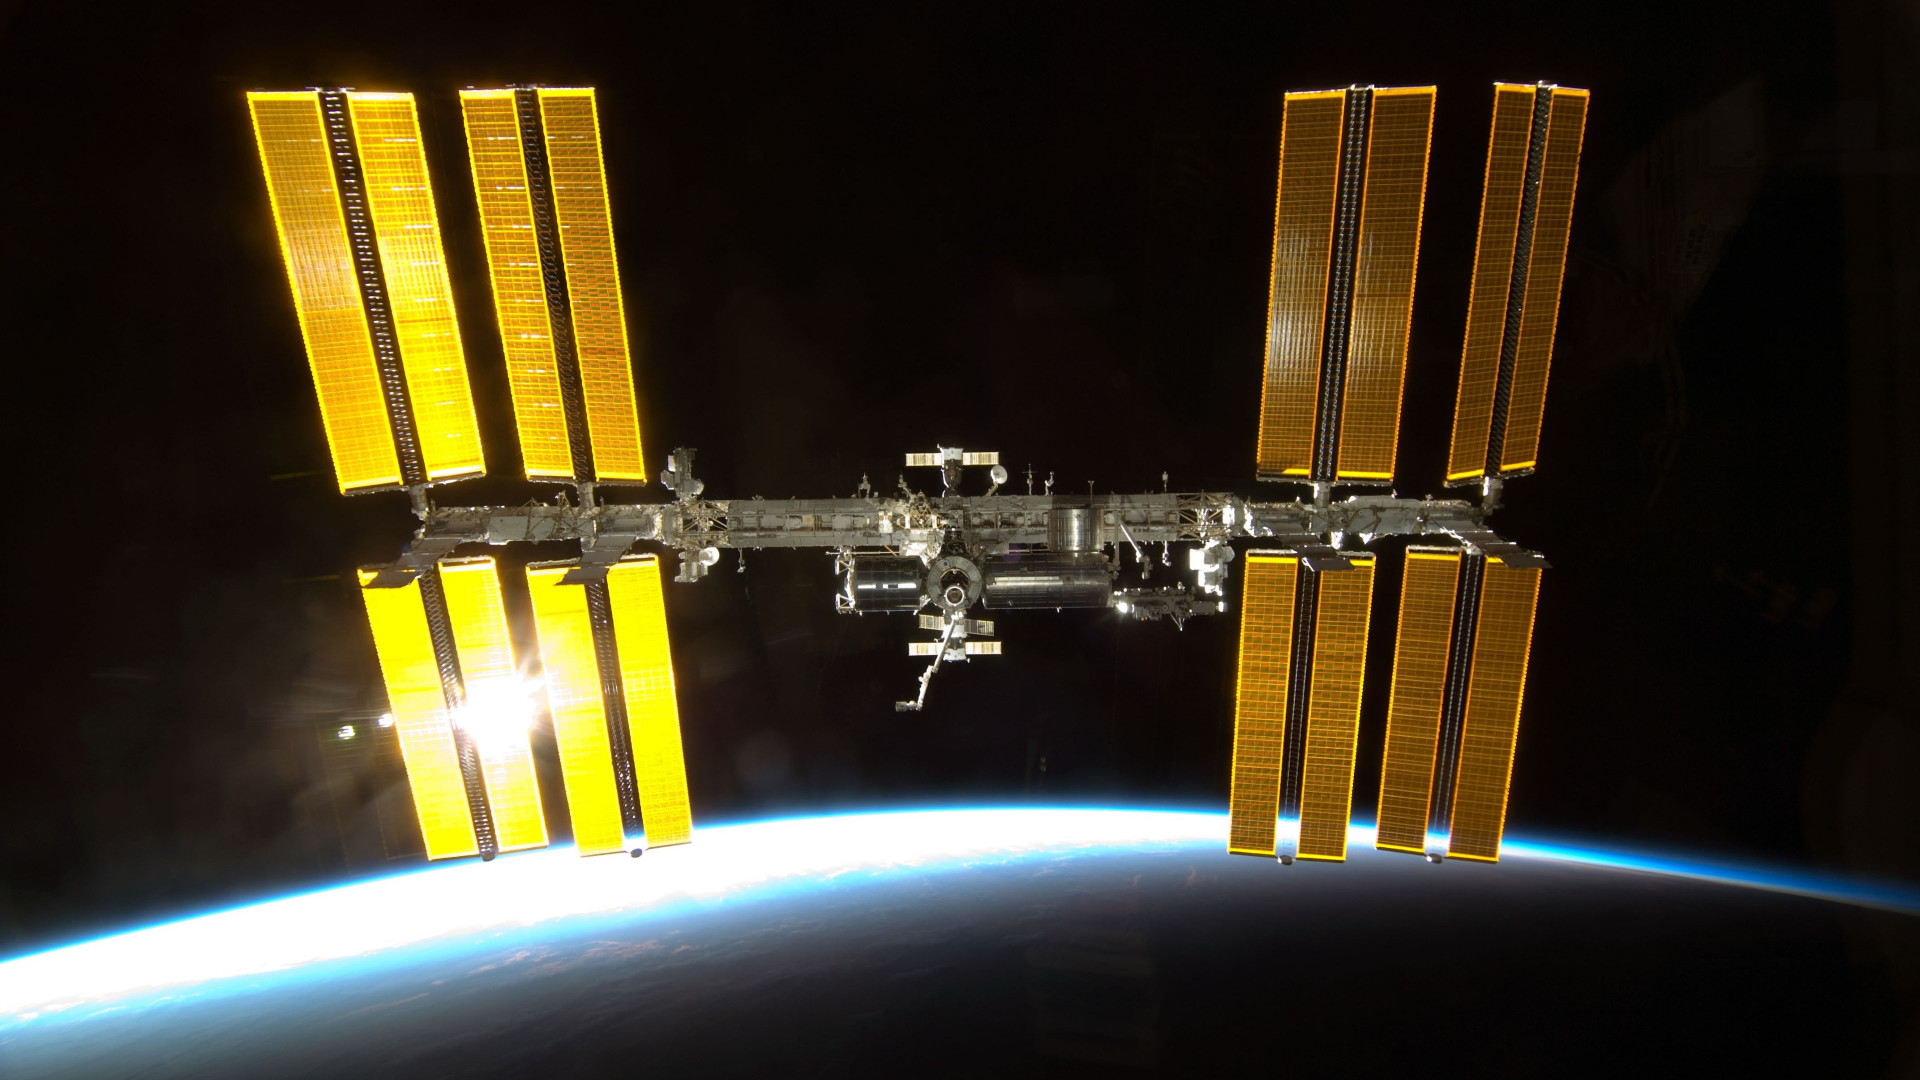 International Space Station wallpaper 1920x1080